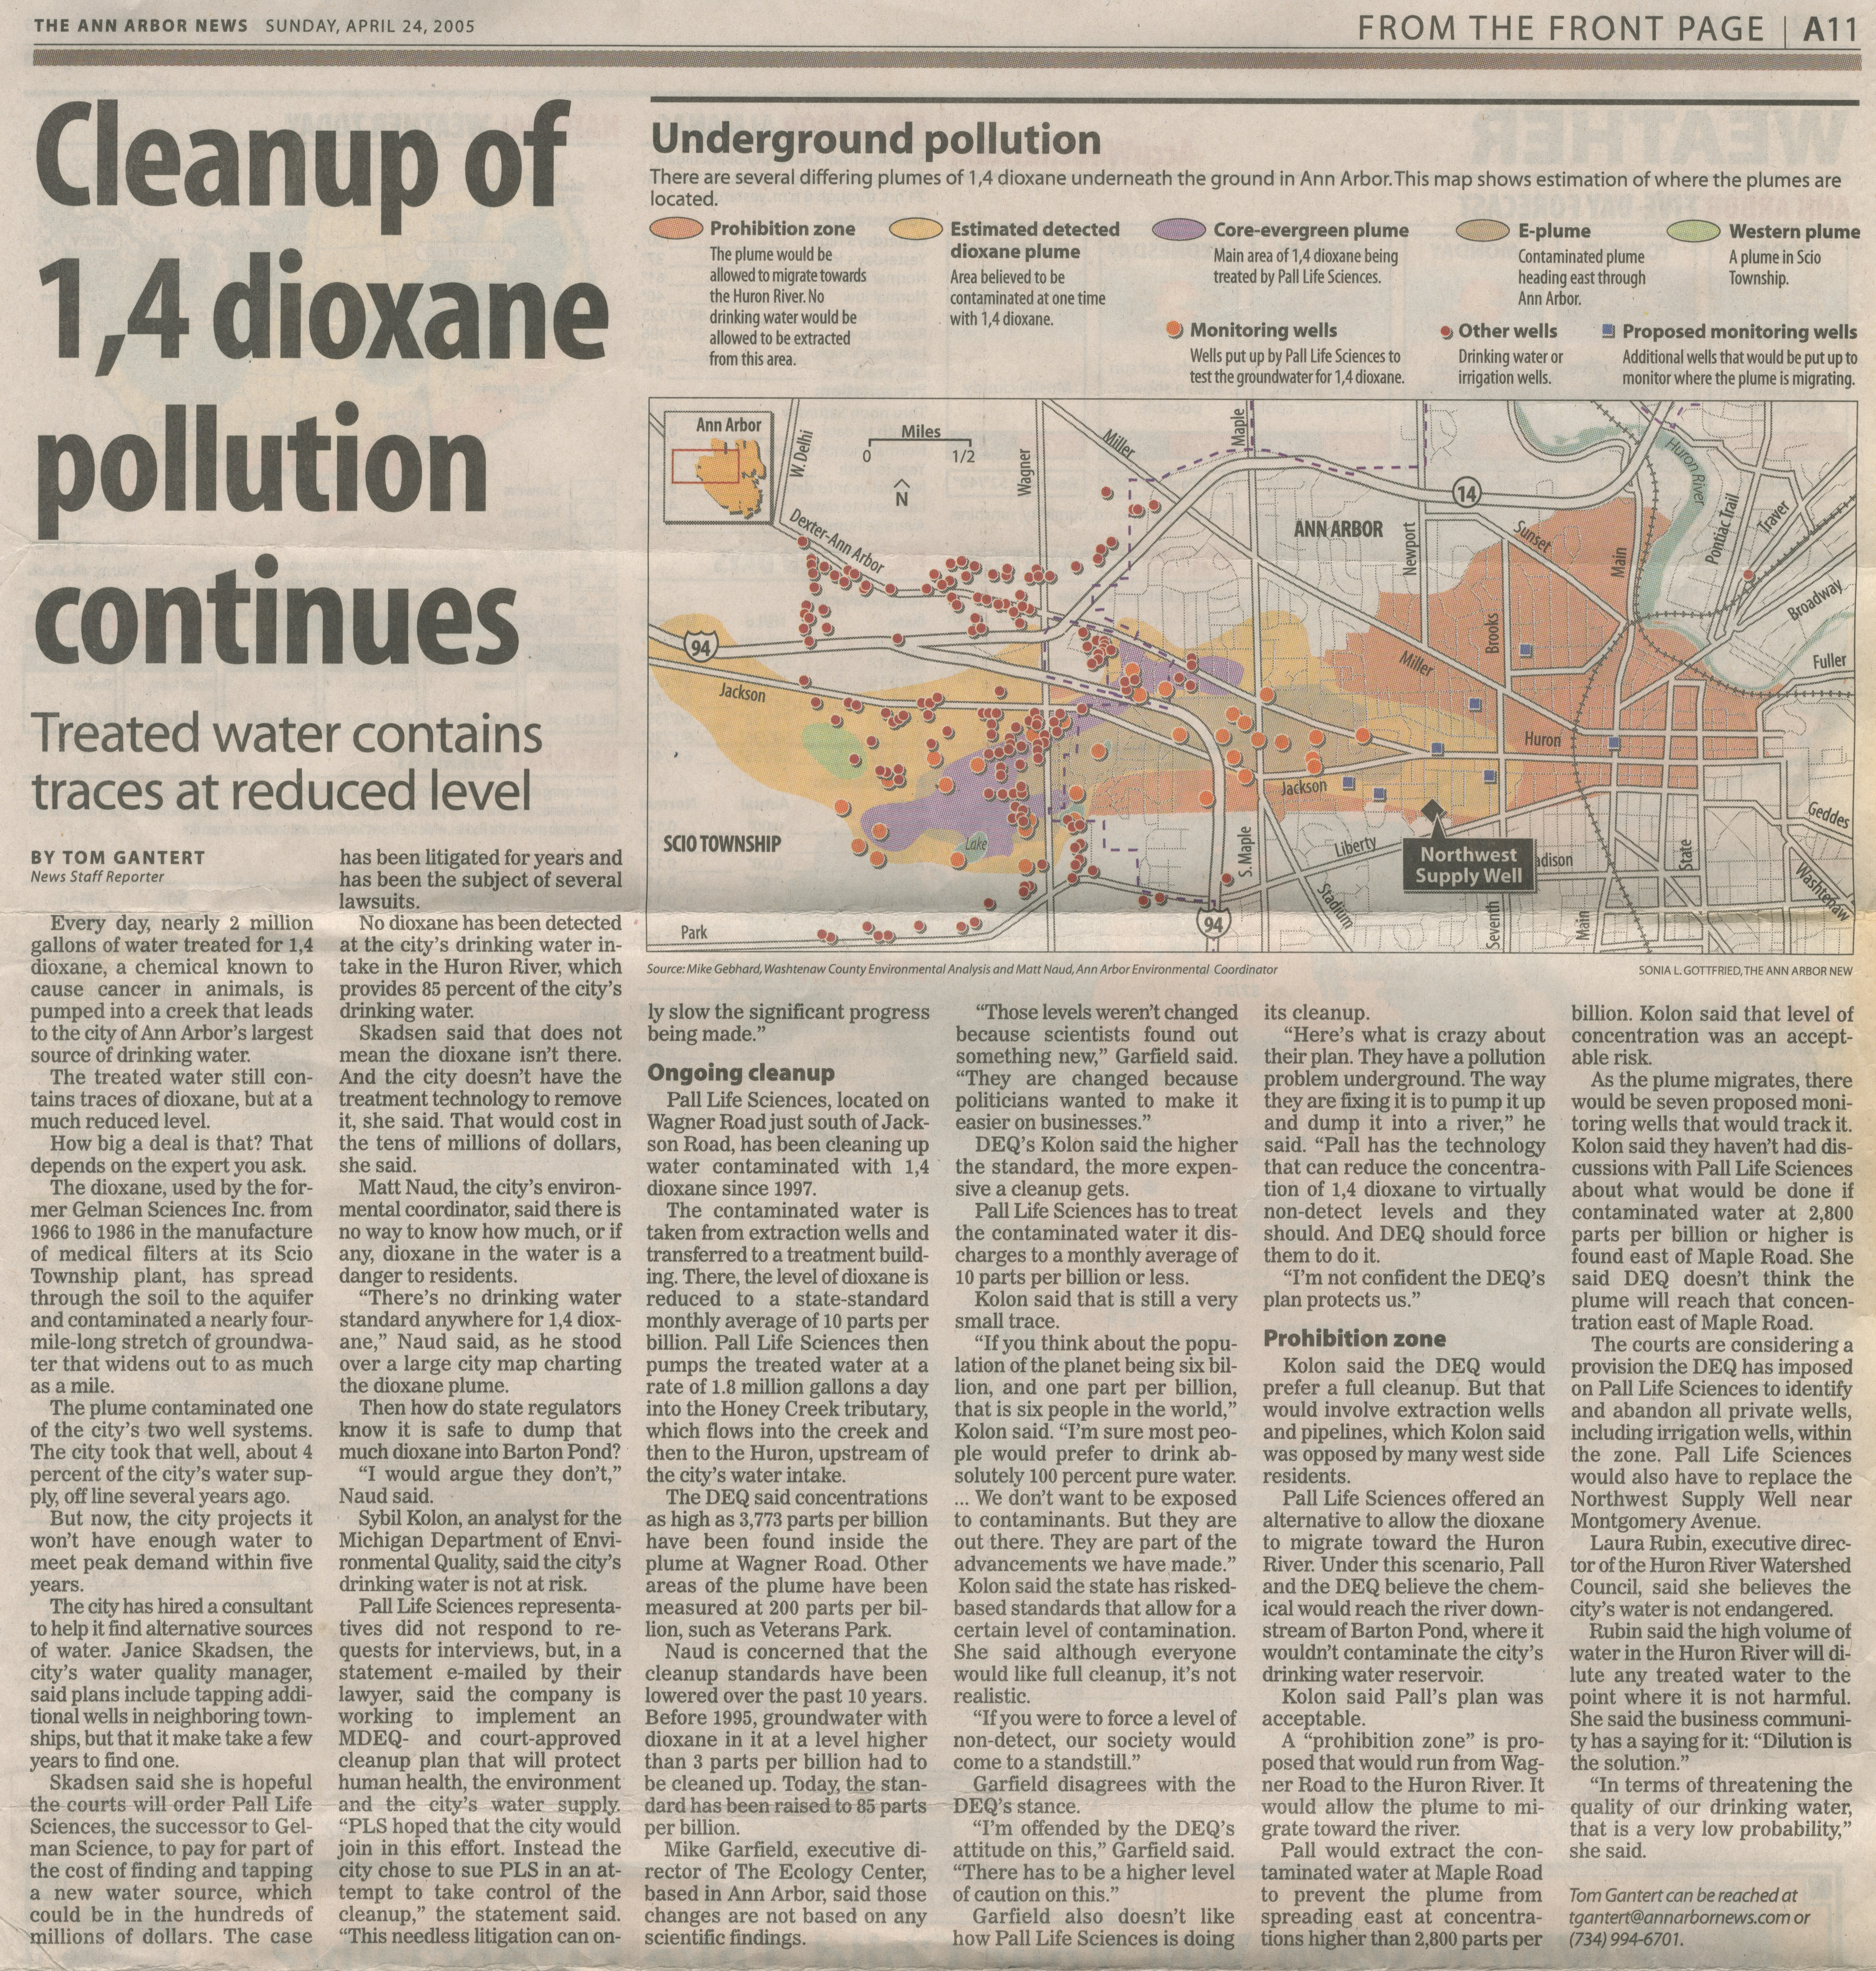 Cleanup Of 1,4-dioxane Pollution Continues image